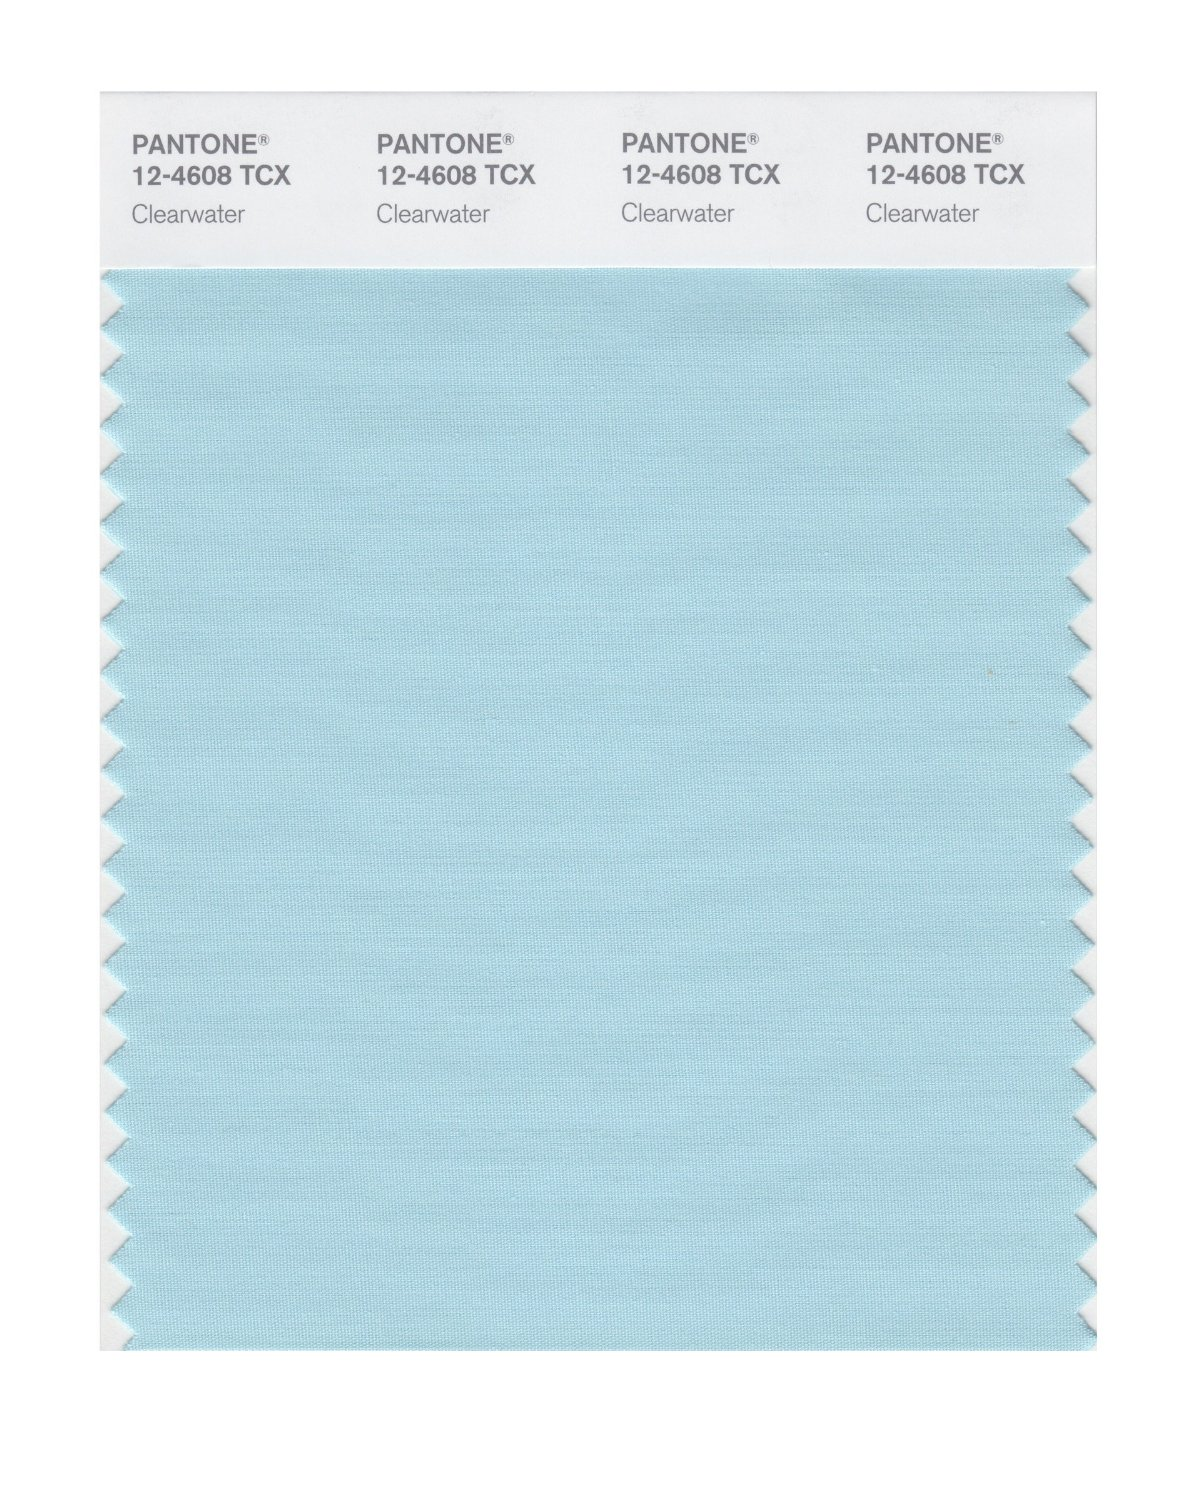 Pantone Smart Swatch 12-4608 Clearwater